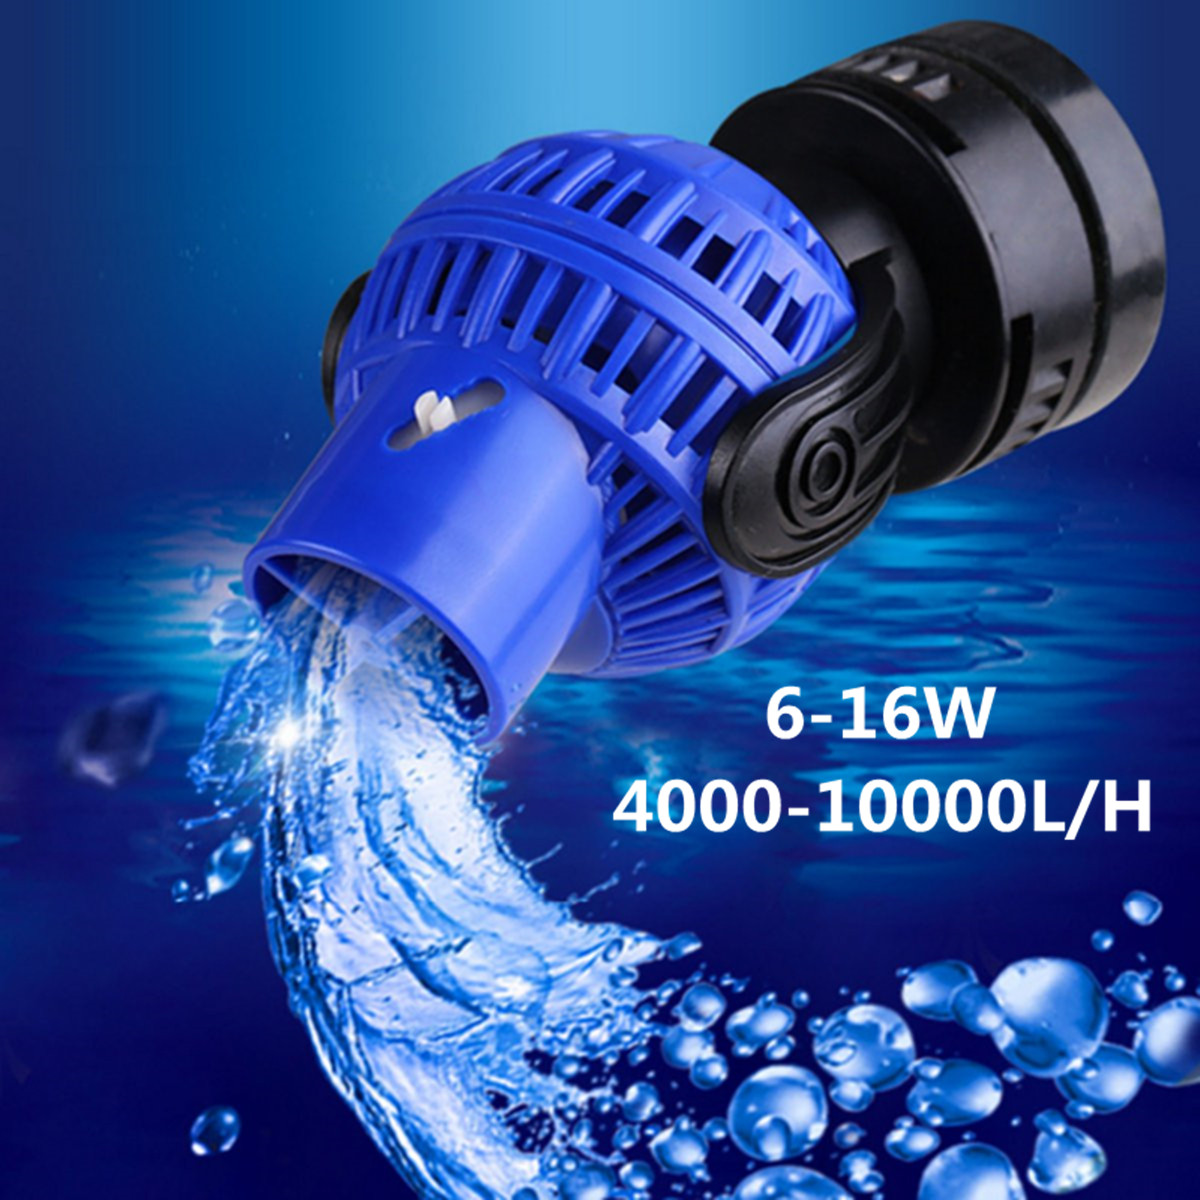 Aquarium Fish Tank 360 Water Wave Maker Pump Powerhead Magnet Base 4000-15000L/H Wave Maker For Aquarium Fish Tank Aquarium Pump